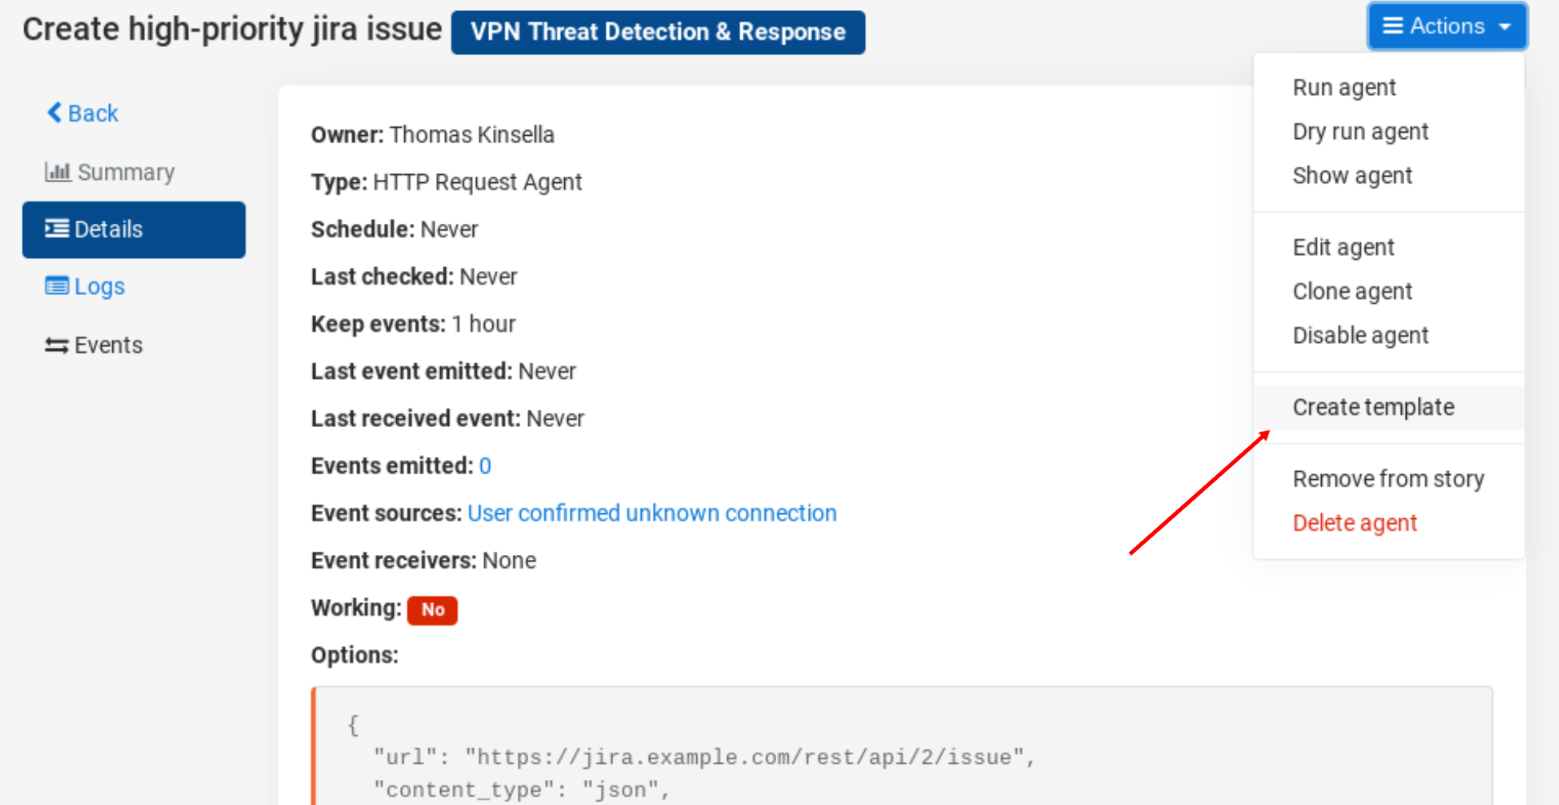 Create a private template from existing agent